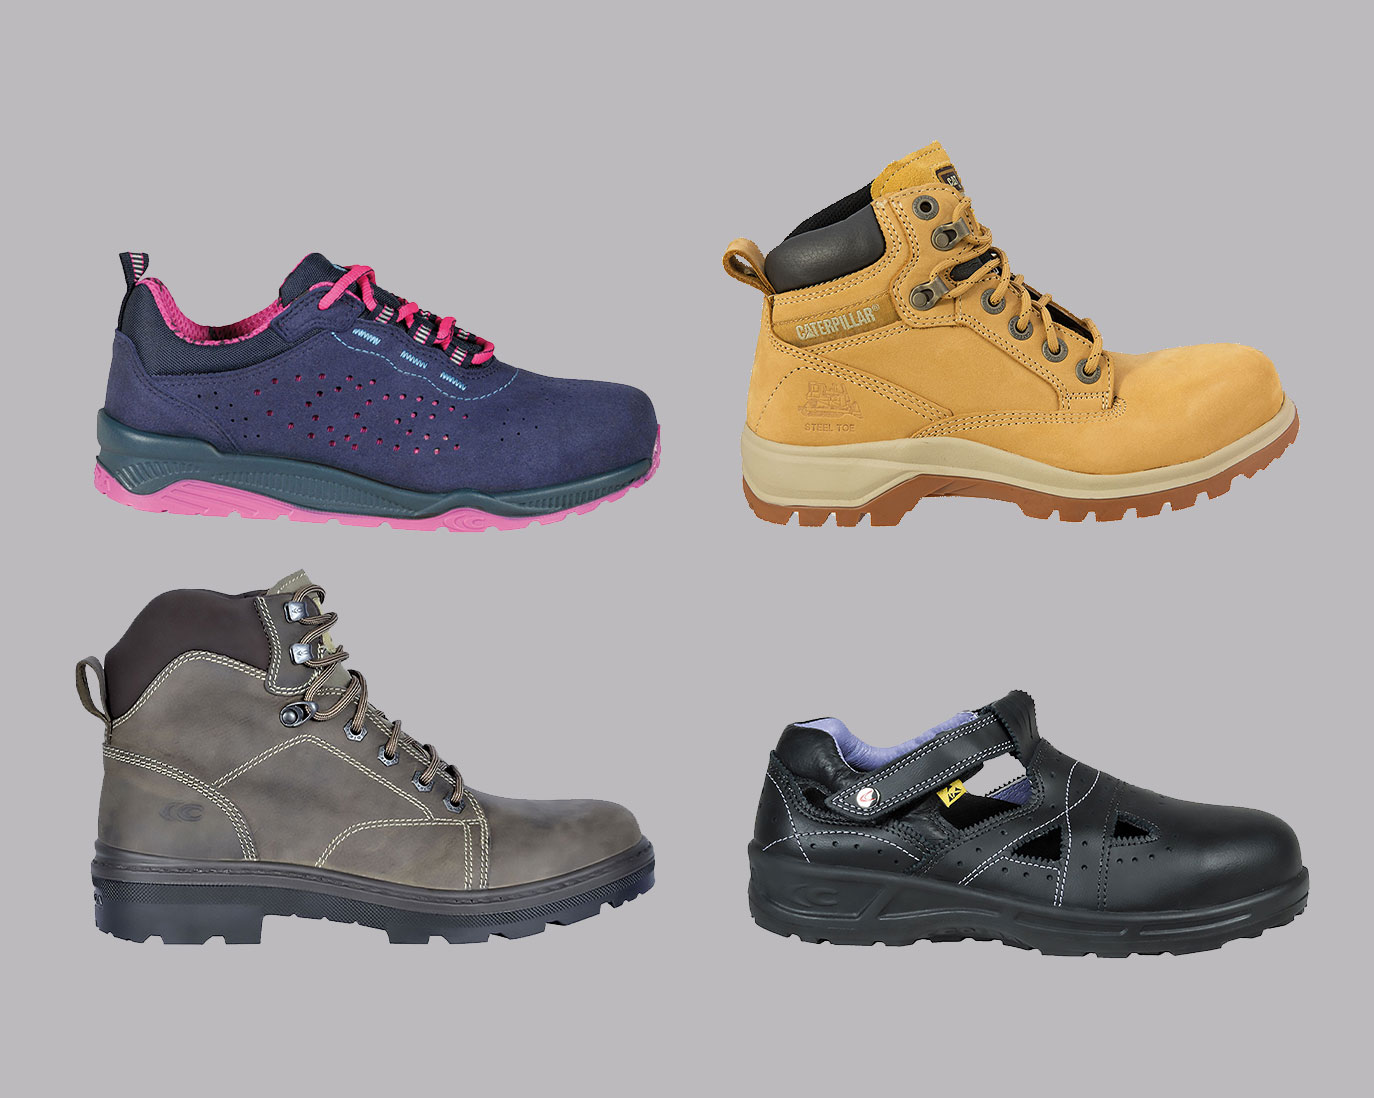 Howsafe| UK Safety footwear, boots, shoes and trainers